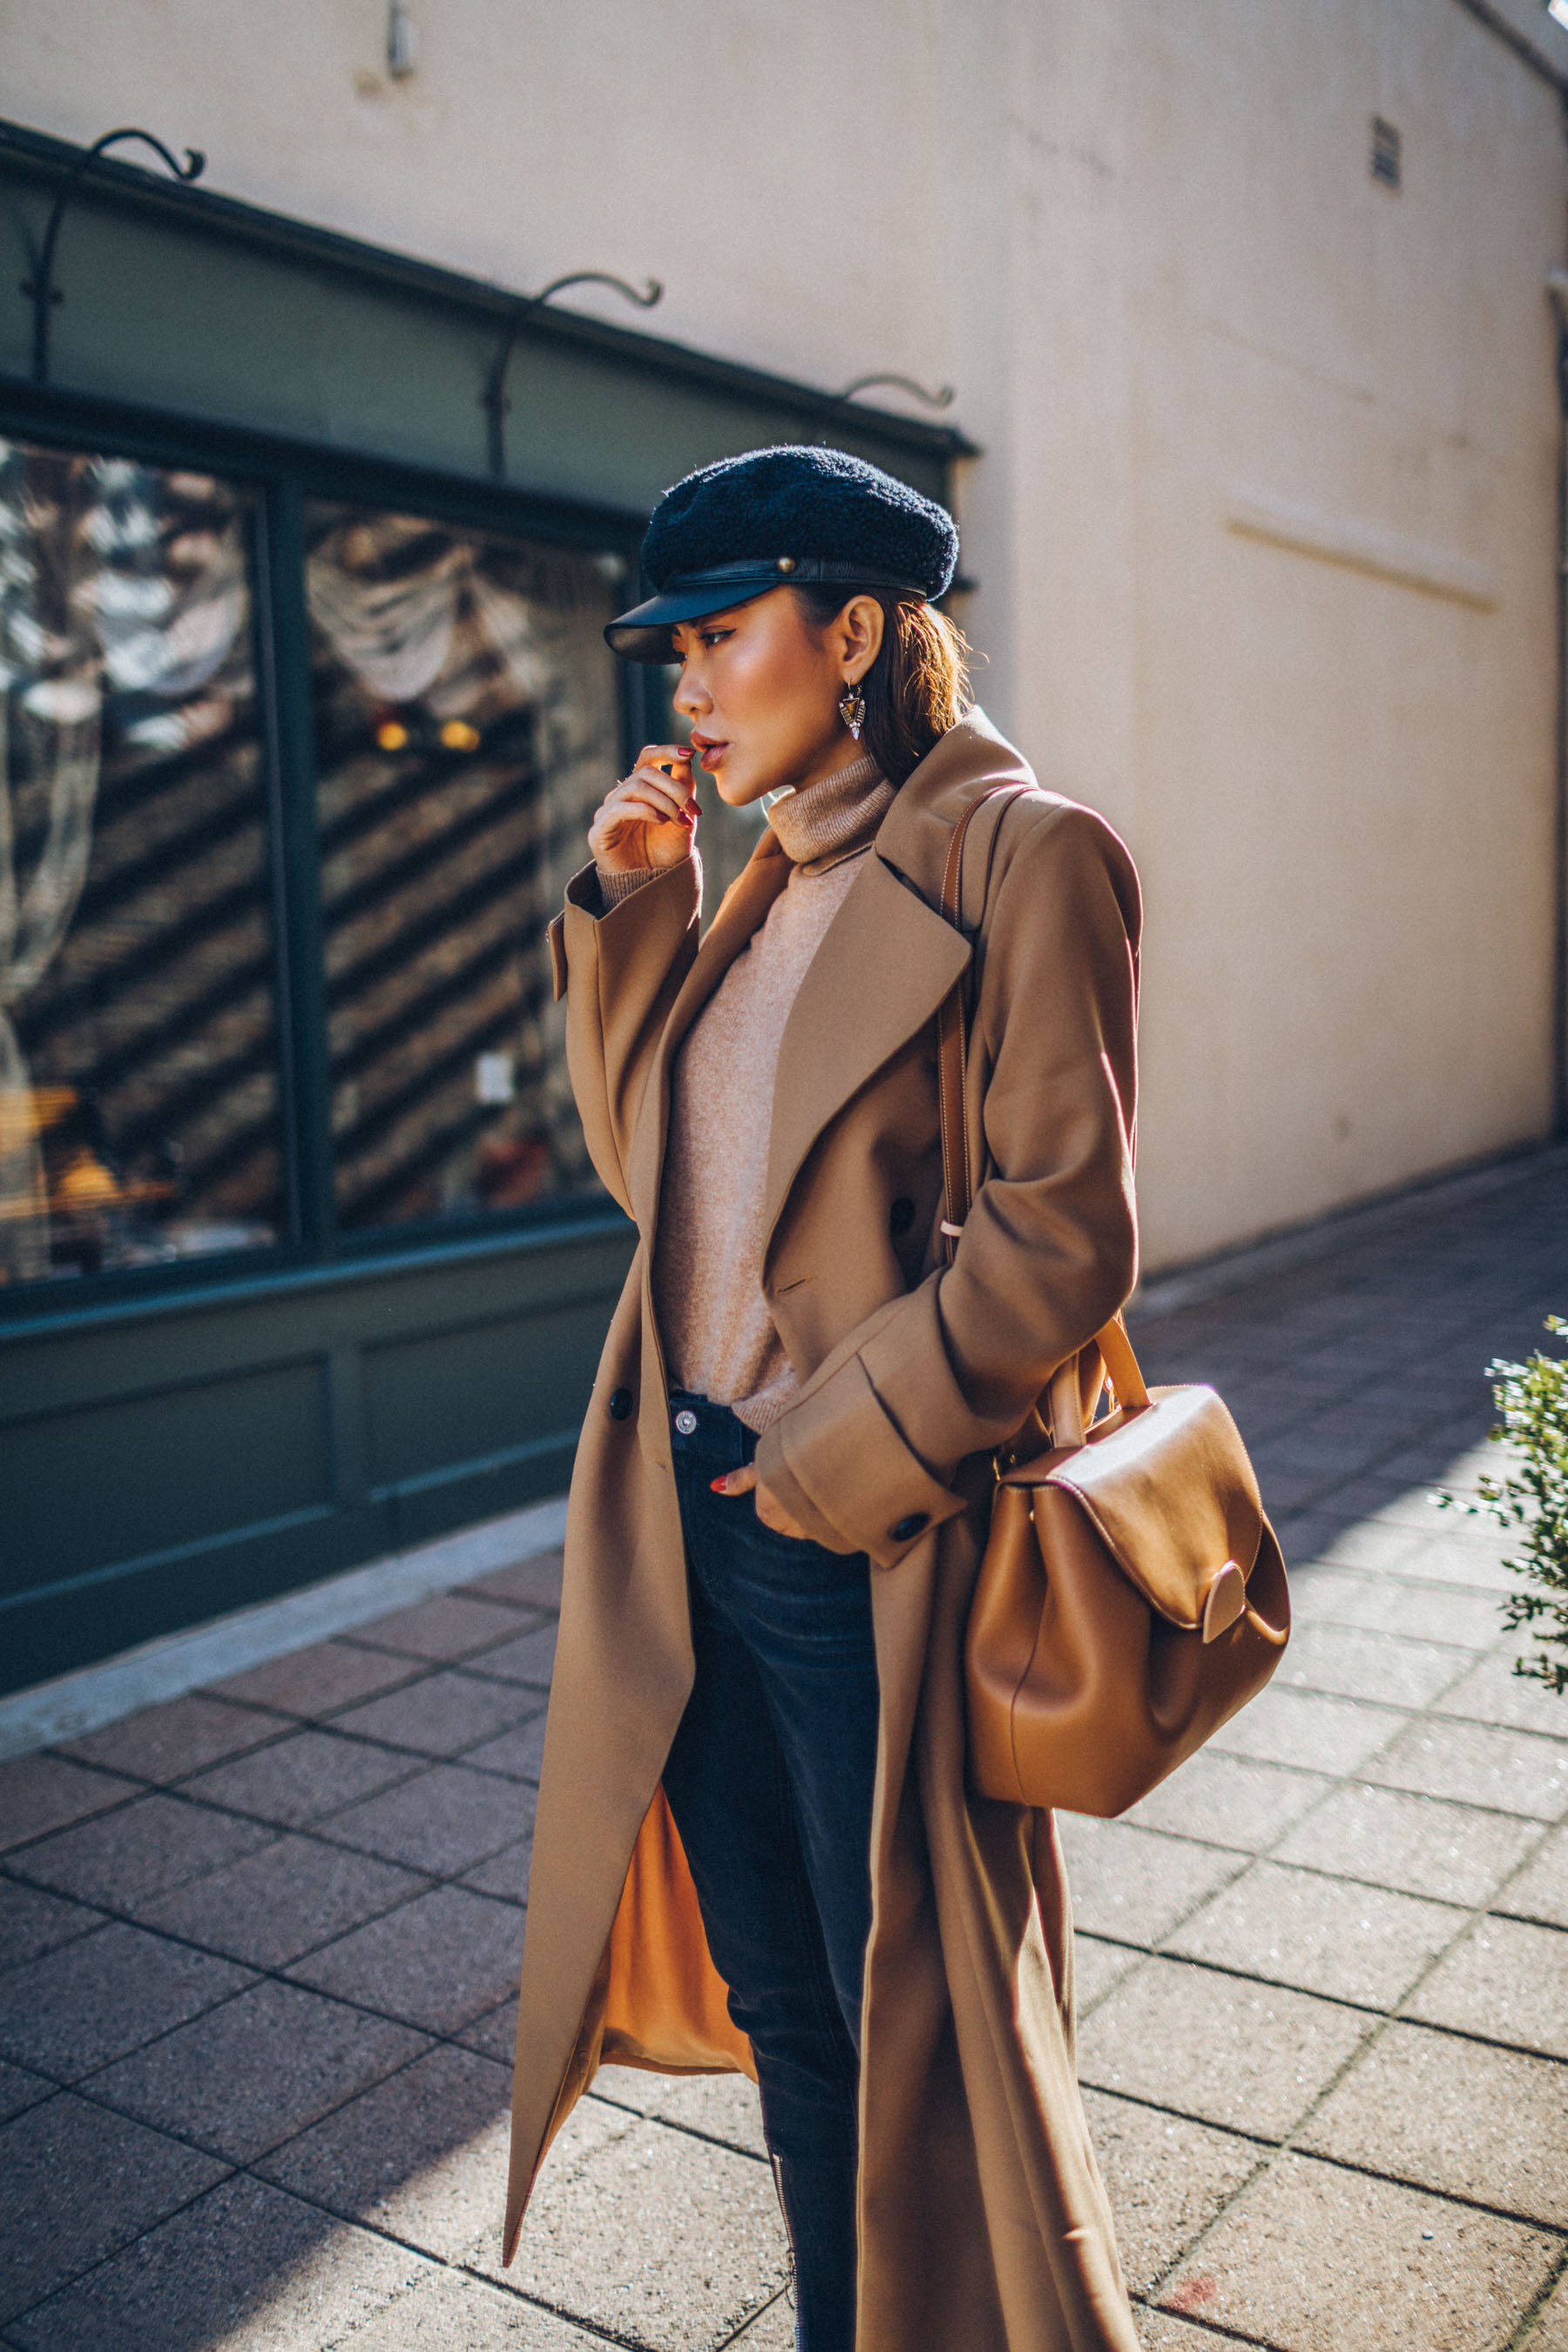 How to Buy an Investment Coat - Belted Camel Coat with Dark Denim Baker Boy Cap and Satchel // Notjessfashion.com // New York fashion blogger, asian blogger, classic camel coat, winter outfit, classic winter outfit, cozy layered outfut, nude boots, nude bag, baker boy hat, how to style camel coat, jessica wang, fashion blogger, street style, fashion blogger street style, oversized coat, duster coat, maxi coat